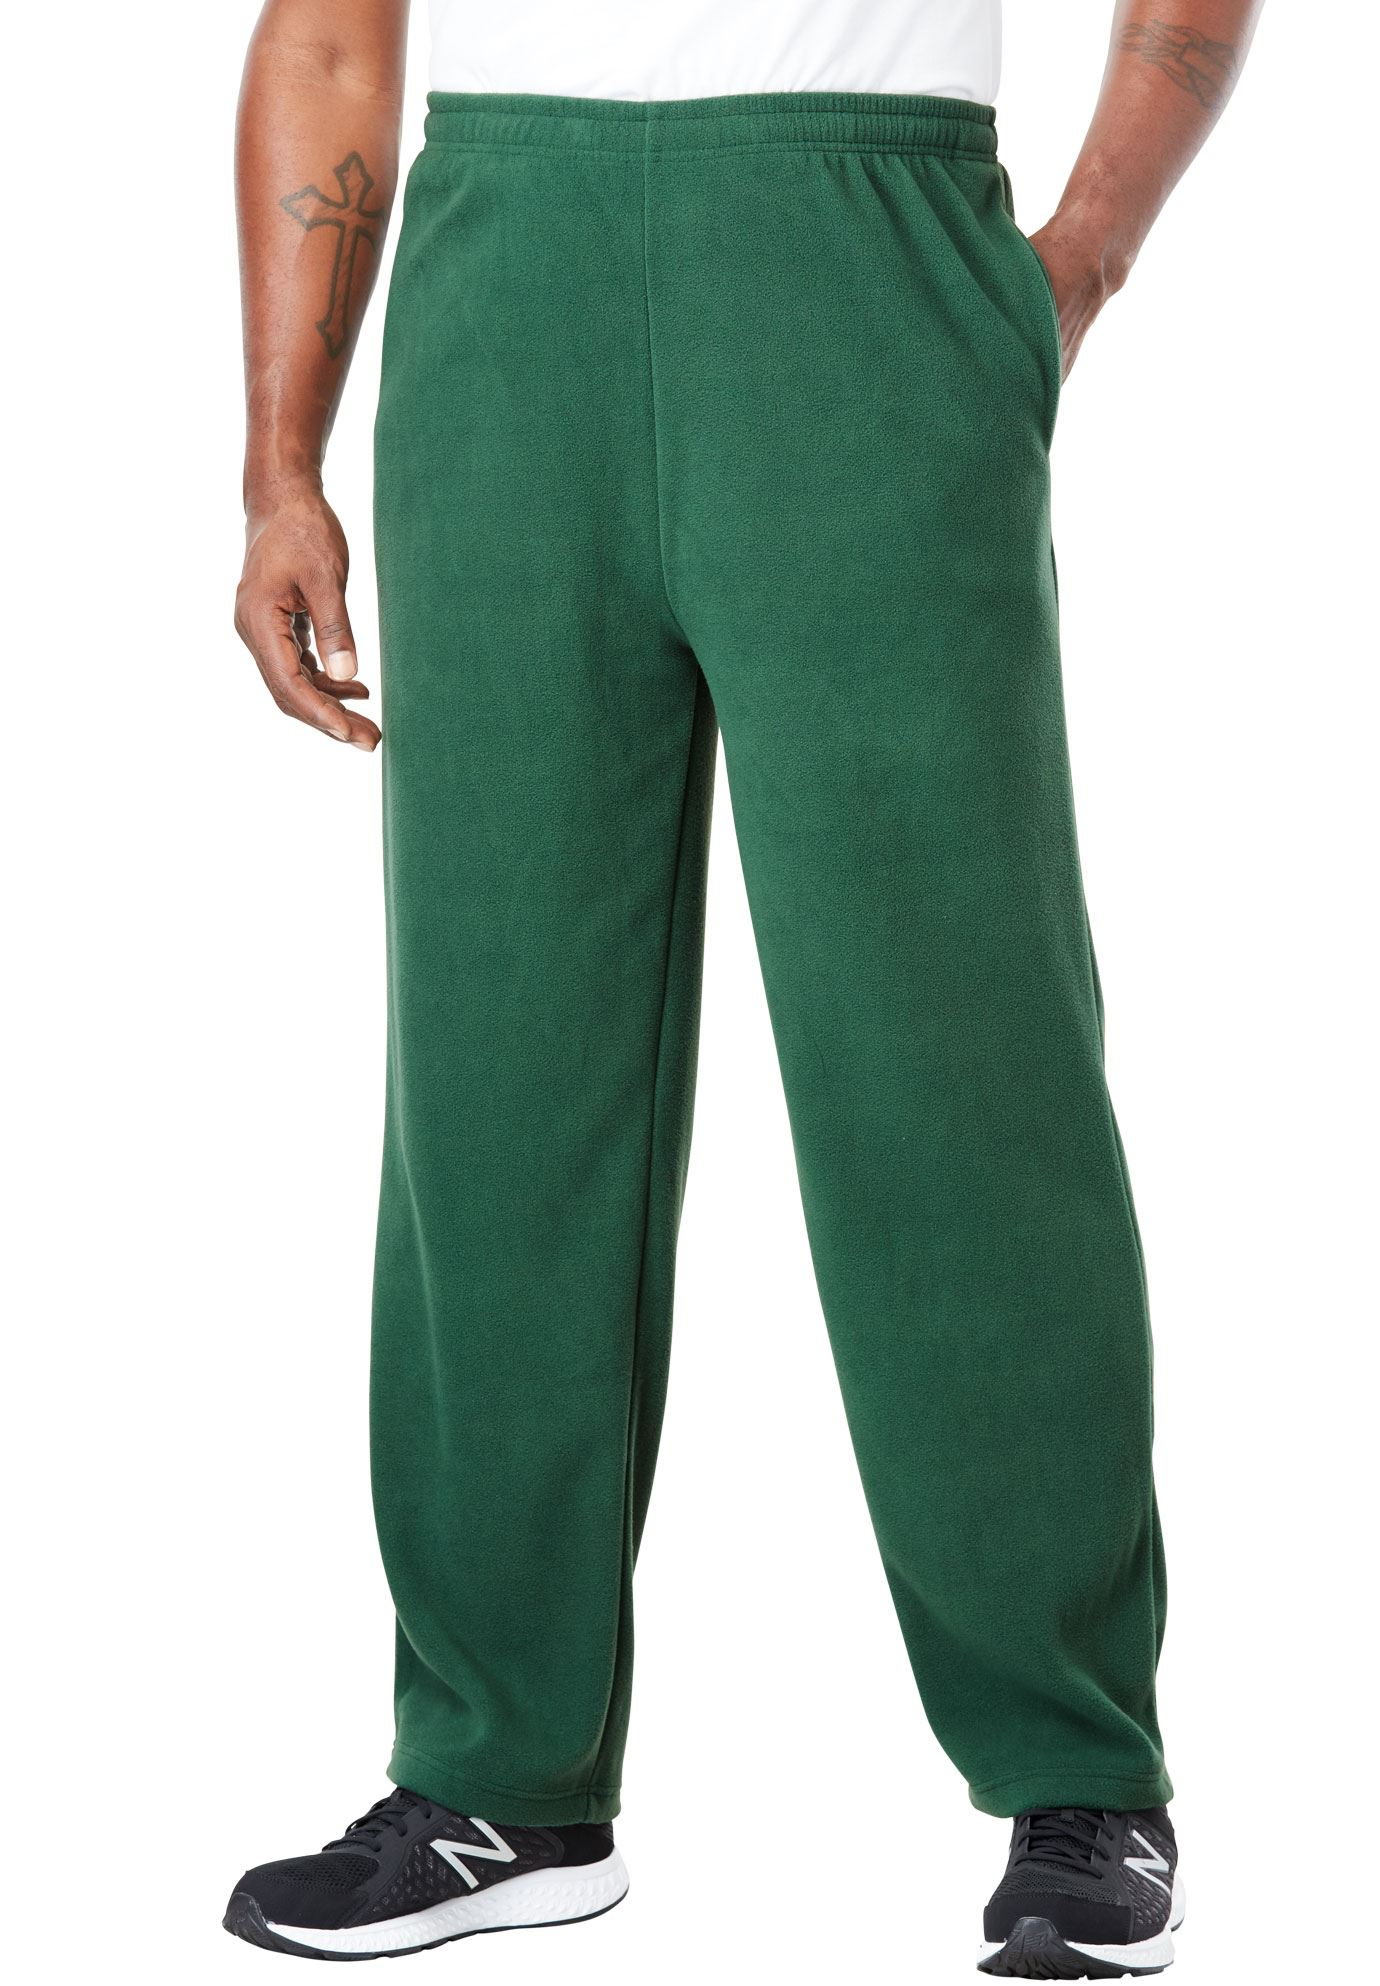 Kingsize Men's Big & Tall Explorer Fleece Open-bottom Sweatpants